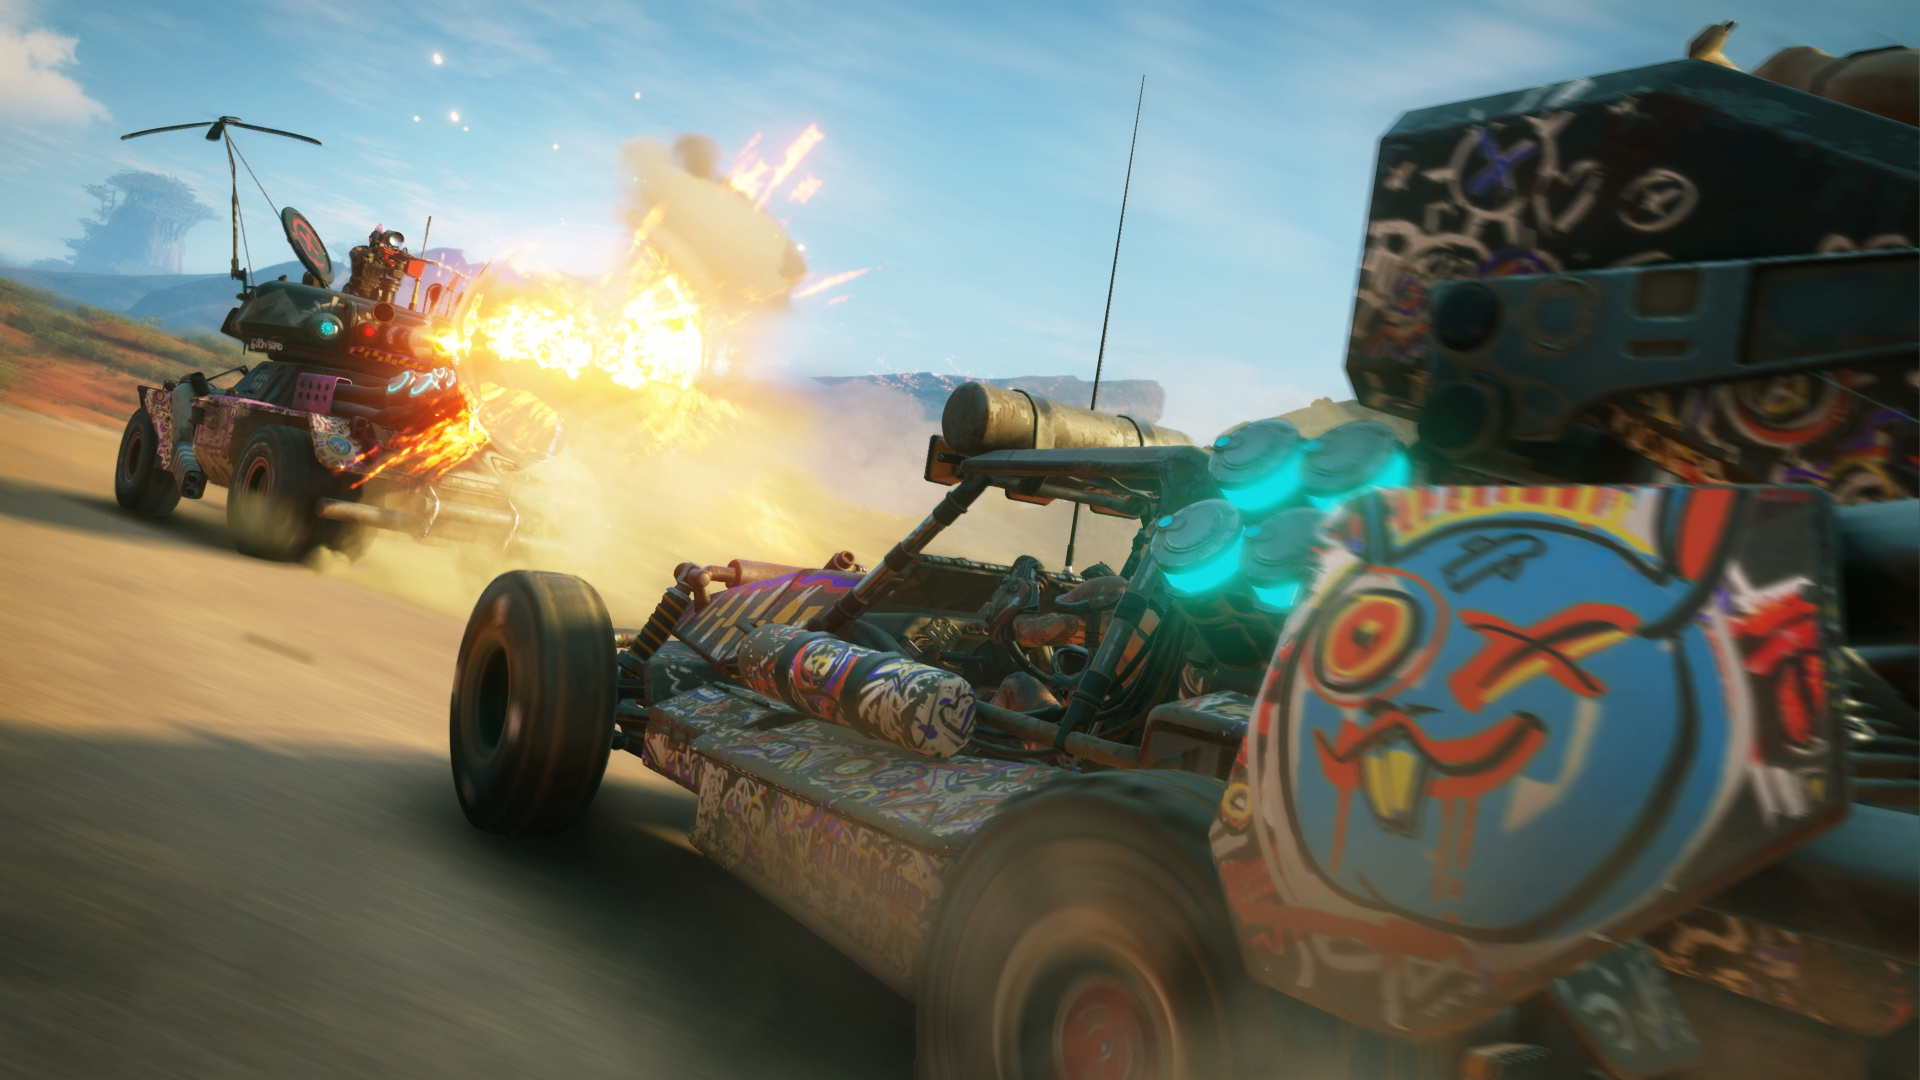 Rage 2 is the mutant spawn of two very different shooters